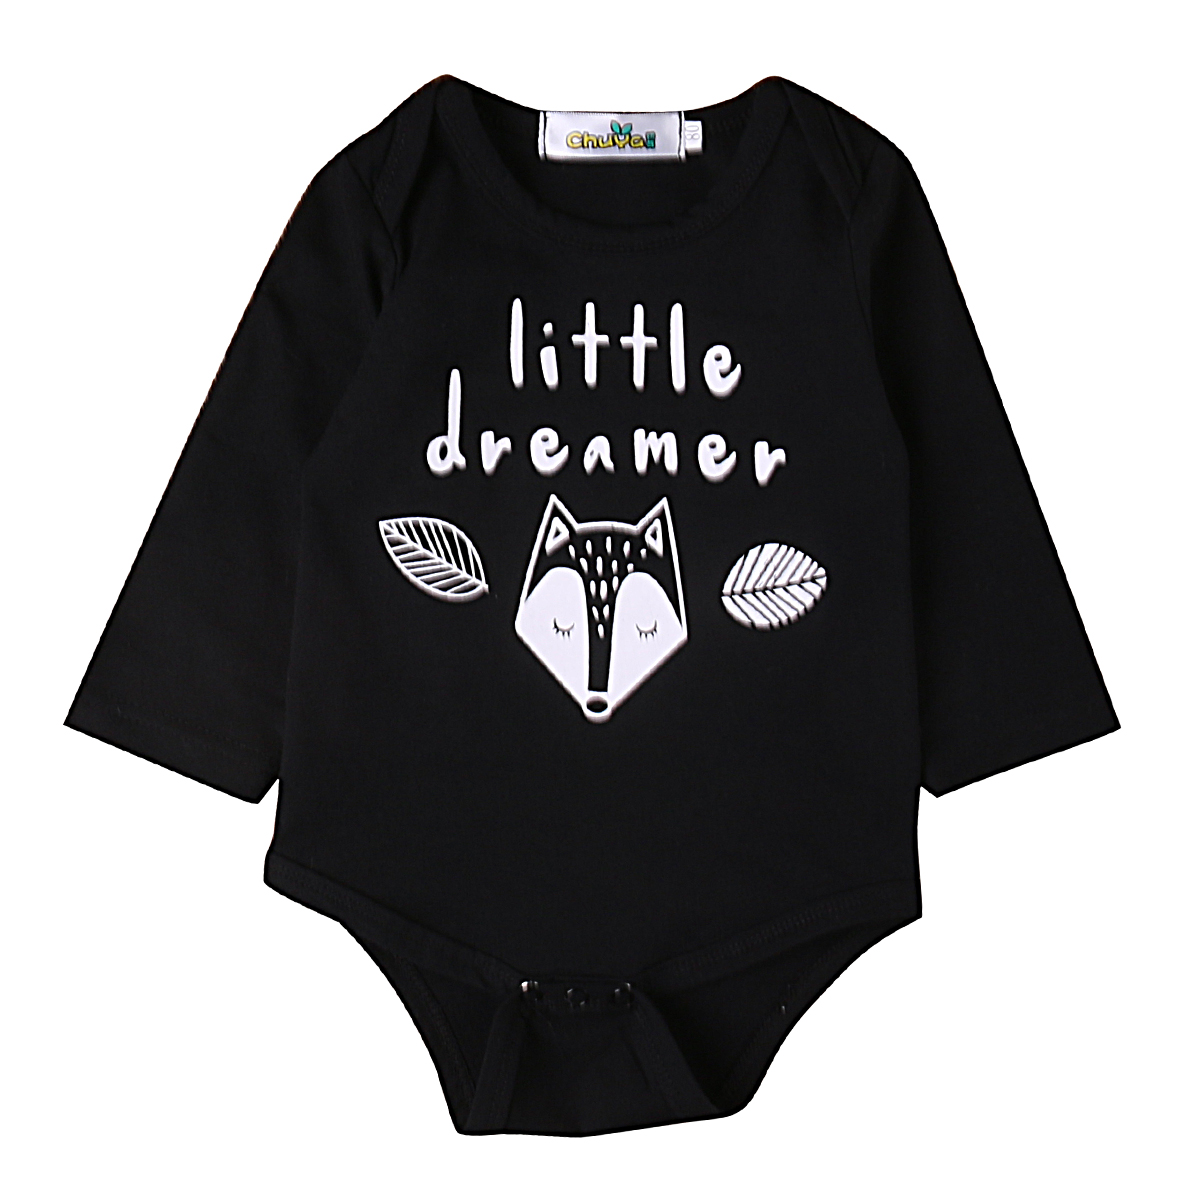 2017 Hot sales Newborn Infant Baby Girls Boys Clothes Cotton Long Sleeve Romper Jumpsuit Baby Clothing 0-18M cotton newborn infant baby boys girls clothes rompers long sleeve cotton jumpsuit clothing baby boy outfits